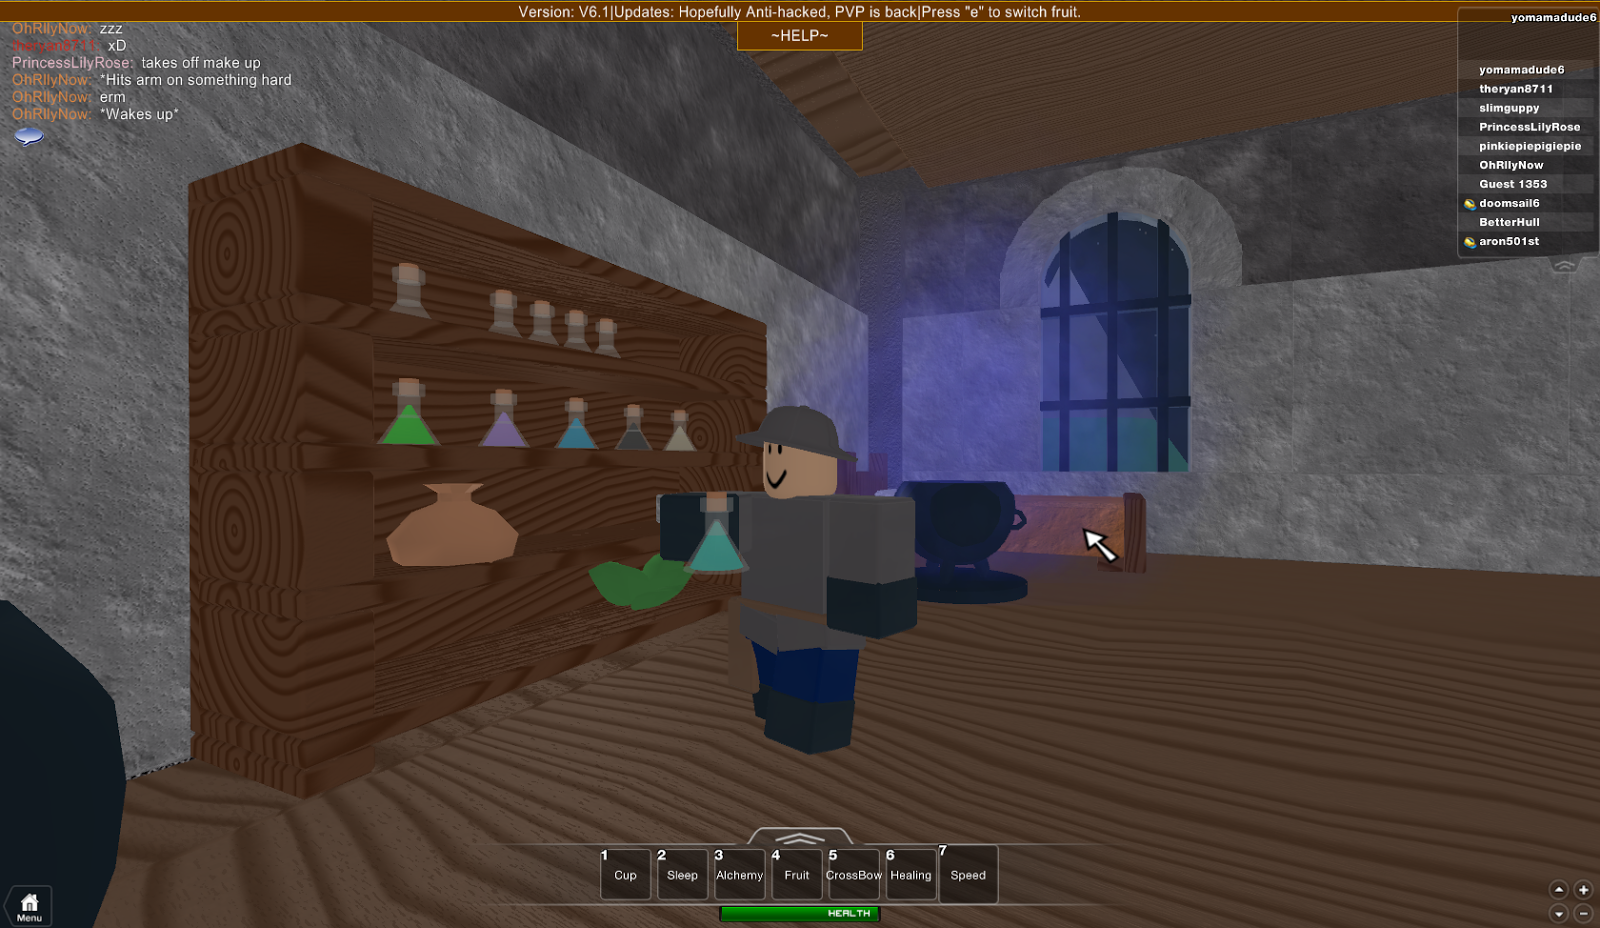 Roblox gear id code list bing images - On The Flipside The Terrain Of The Level In Kingdom Life Ii Is Really Really Flat And Boring There Are No Trees To Look At No Difference In Elevation